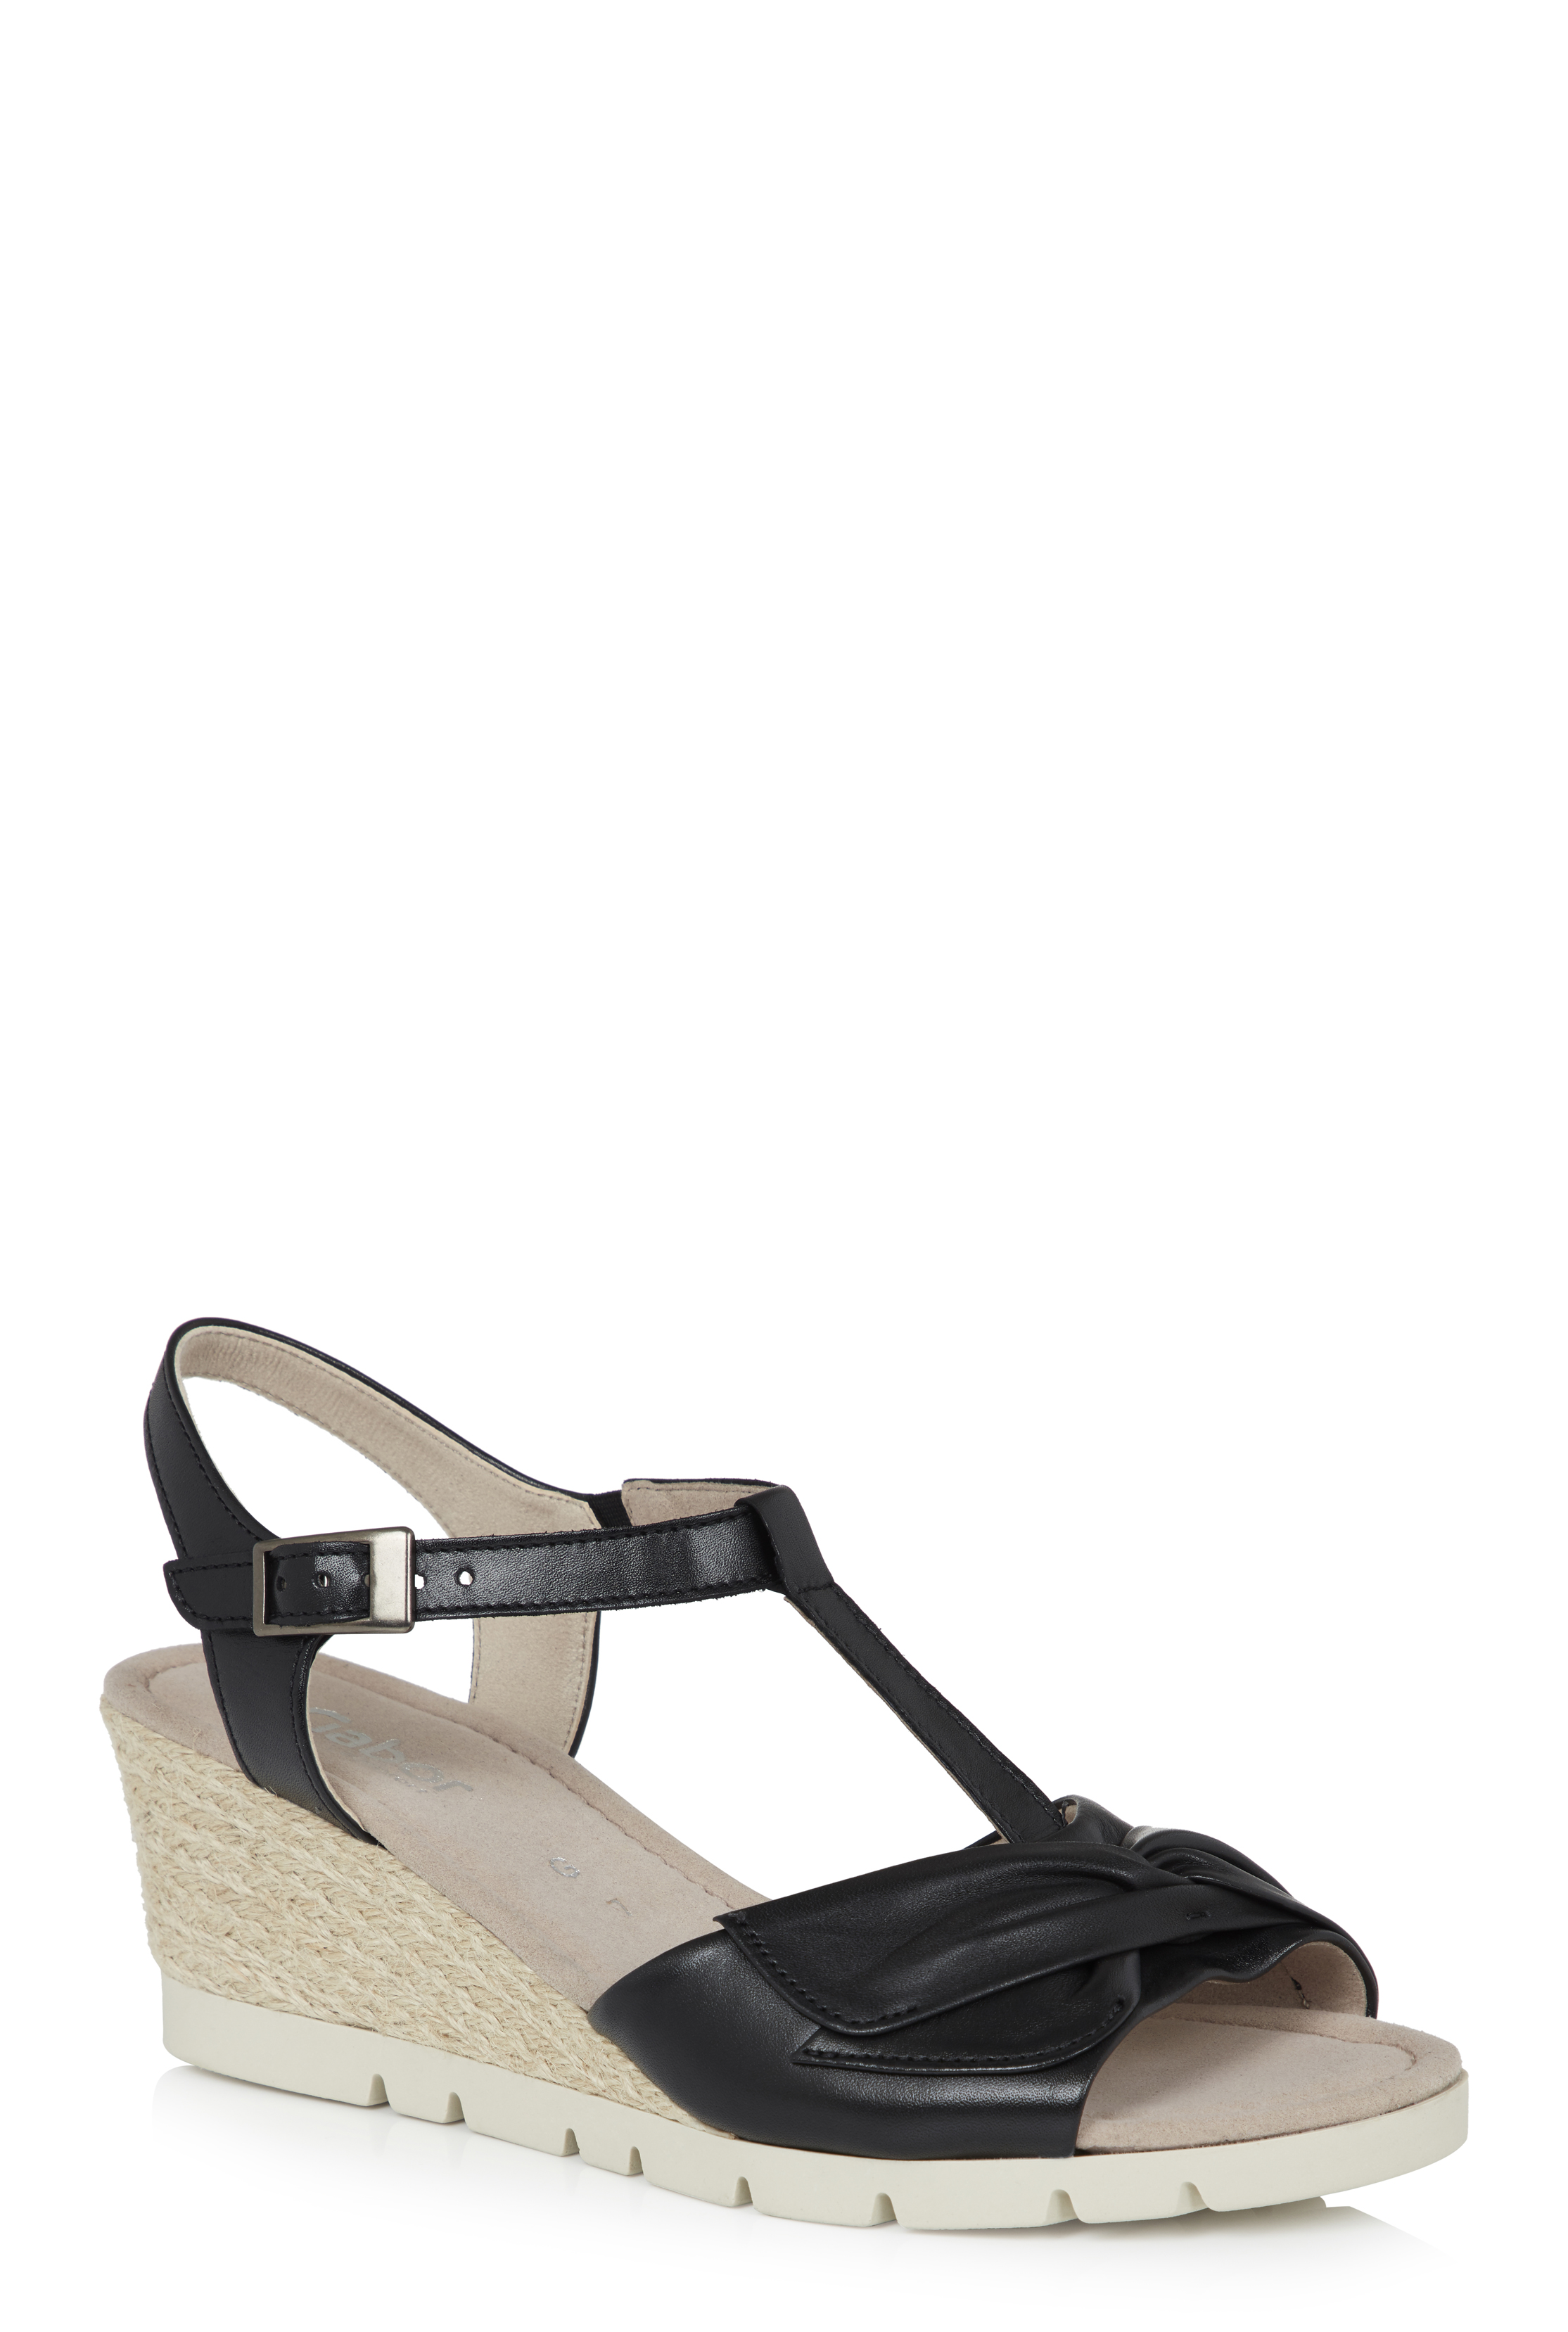 Gabor Grantchester Knot Detail Wedge